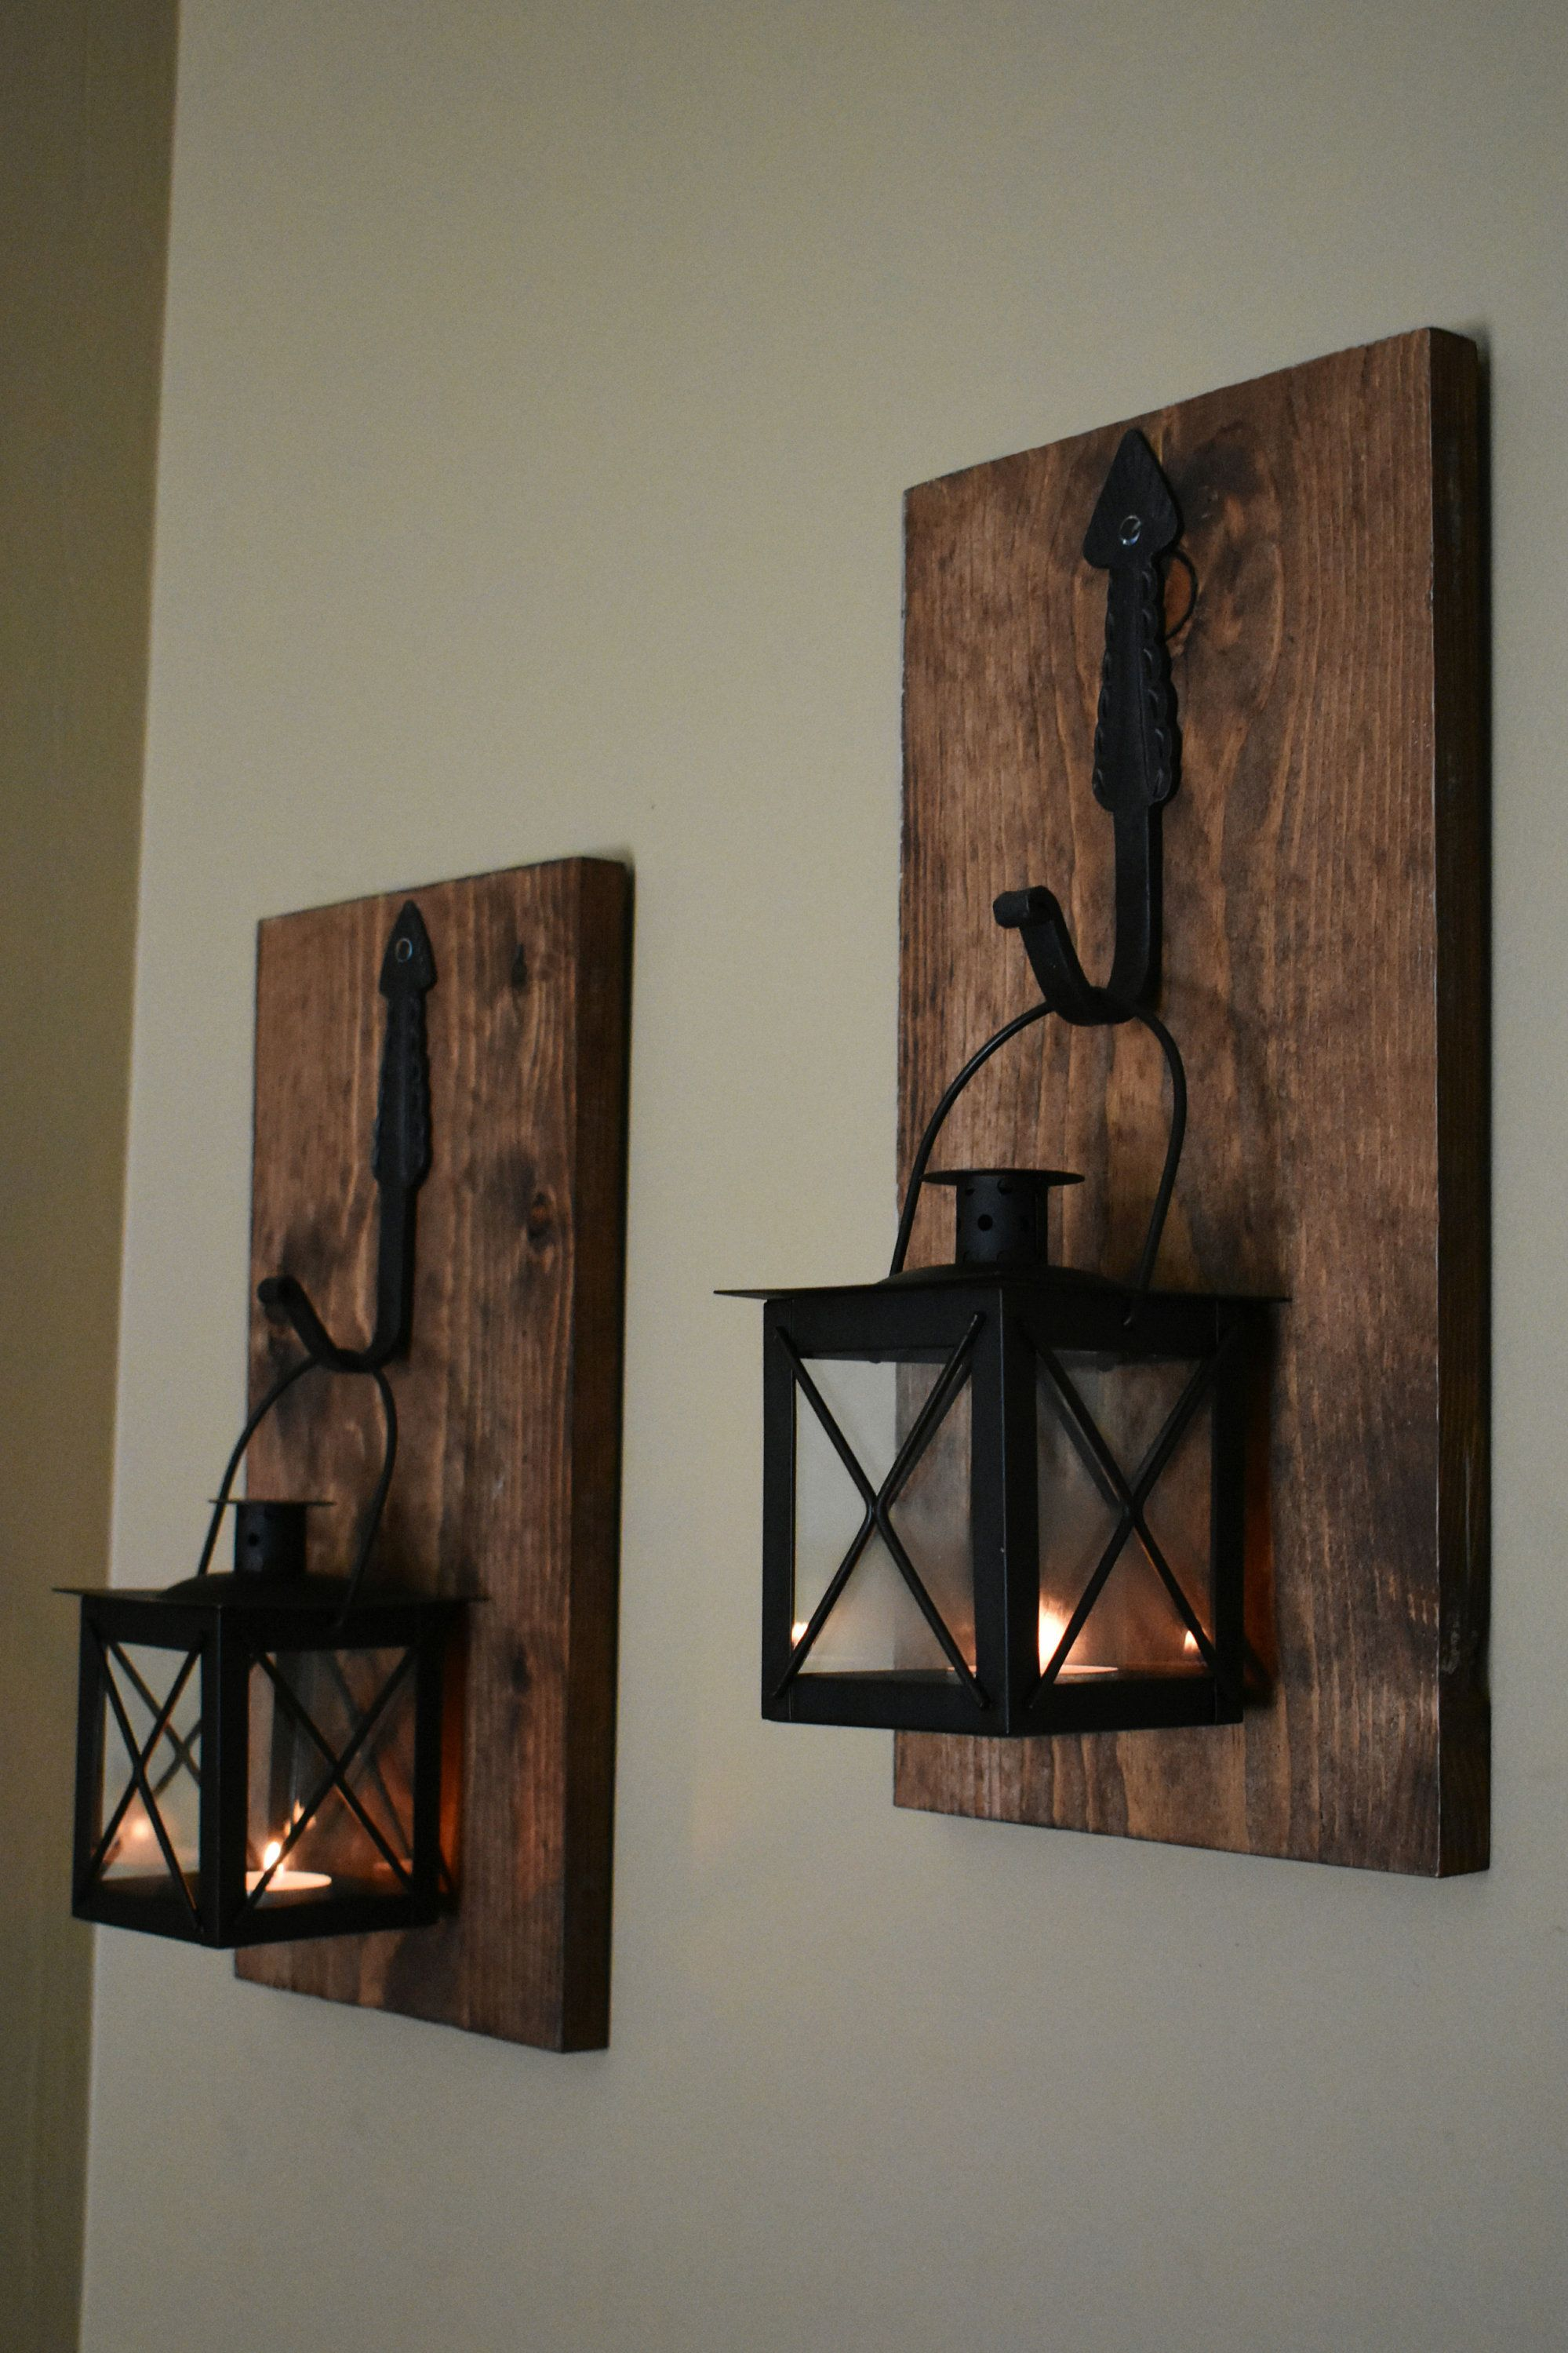 Rustic Wall Decor Wall Sconce Candle Hanging Lantern Lighted